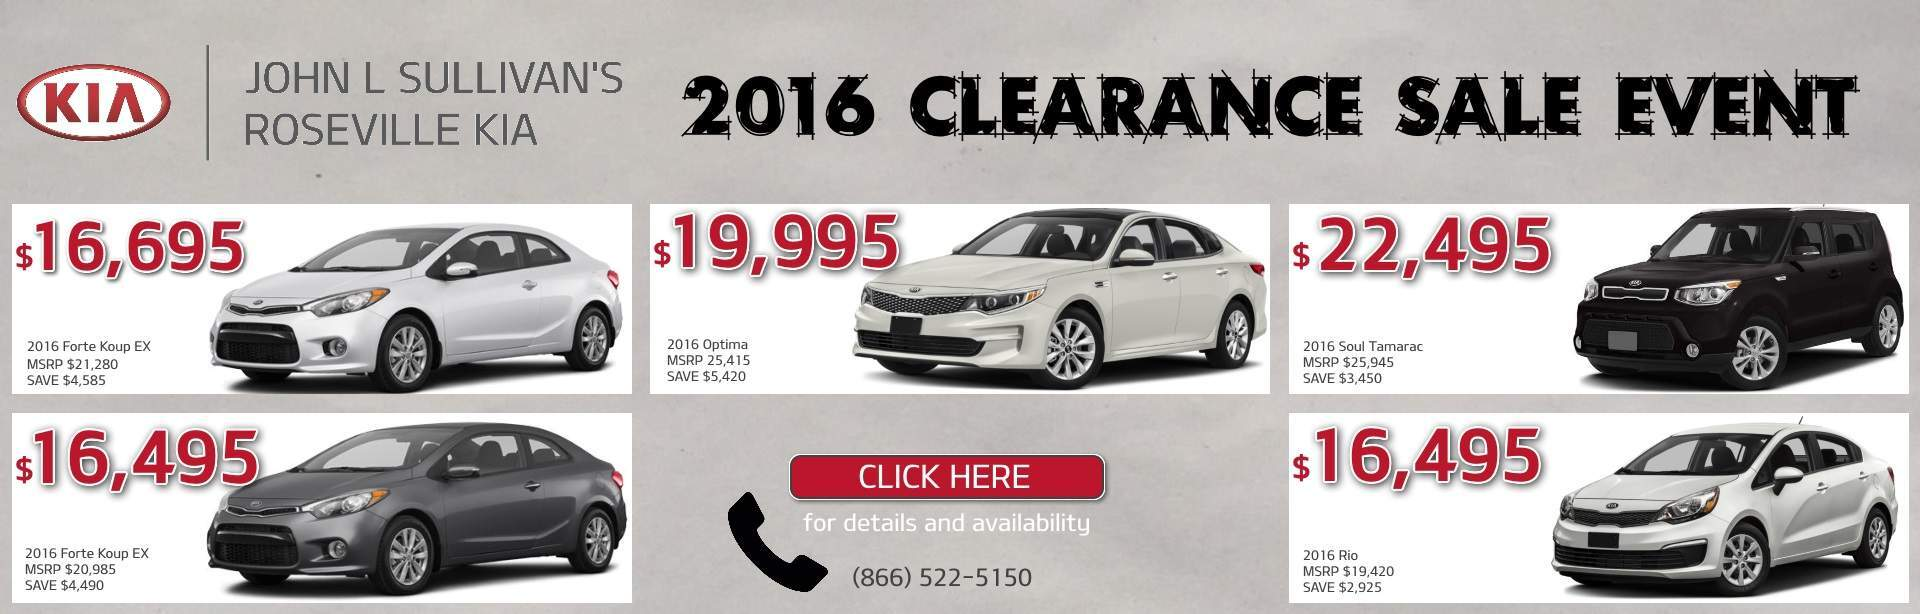 New 2016 Clearance Sale